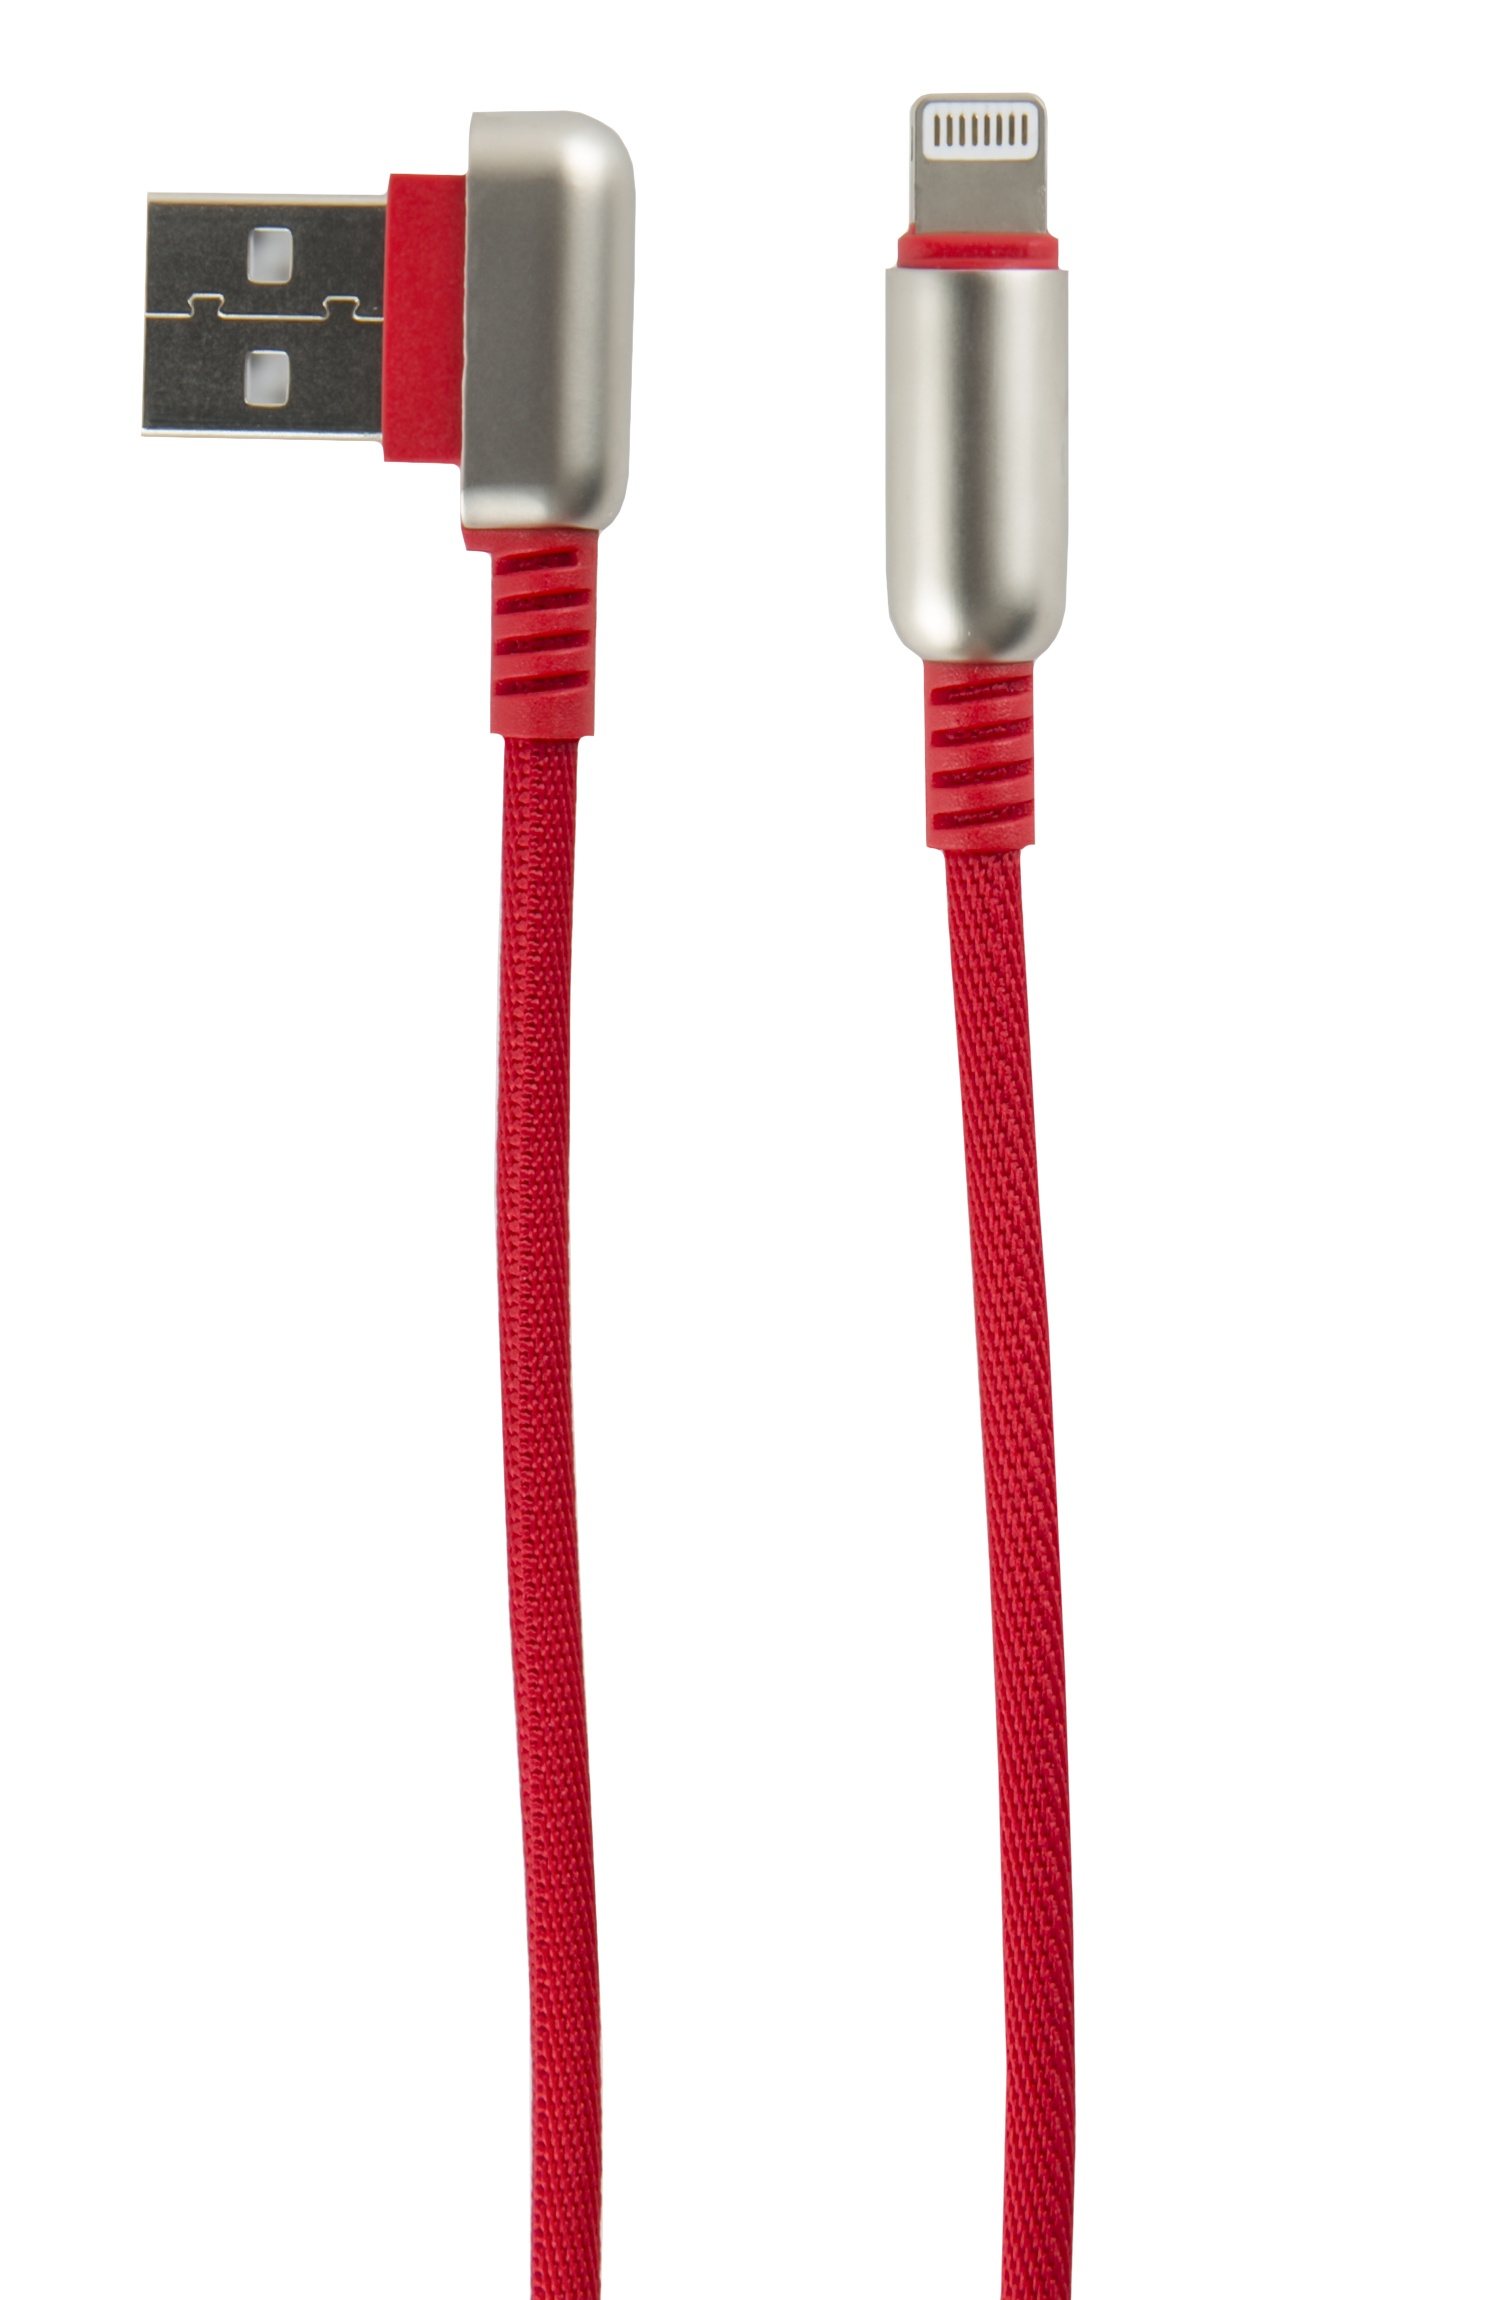 Кабель red line Loop USB - Lightning, красный red line pink кабель lightning usb 1 м